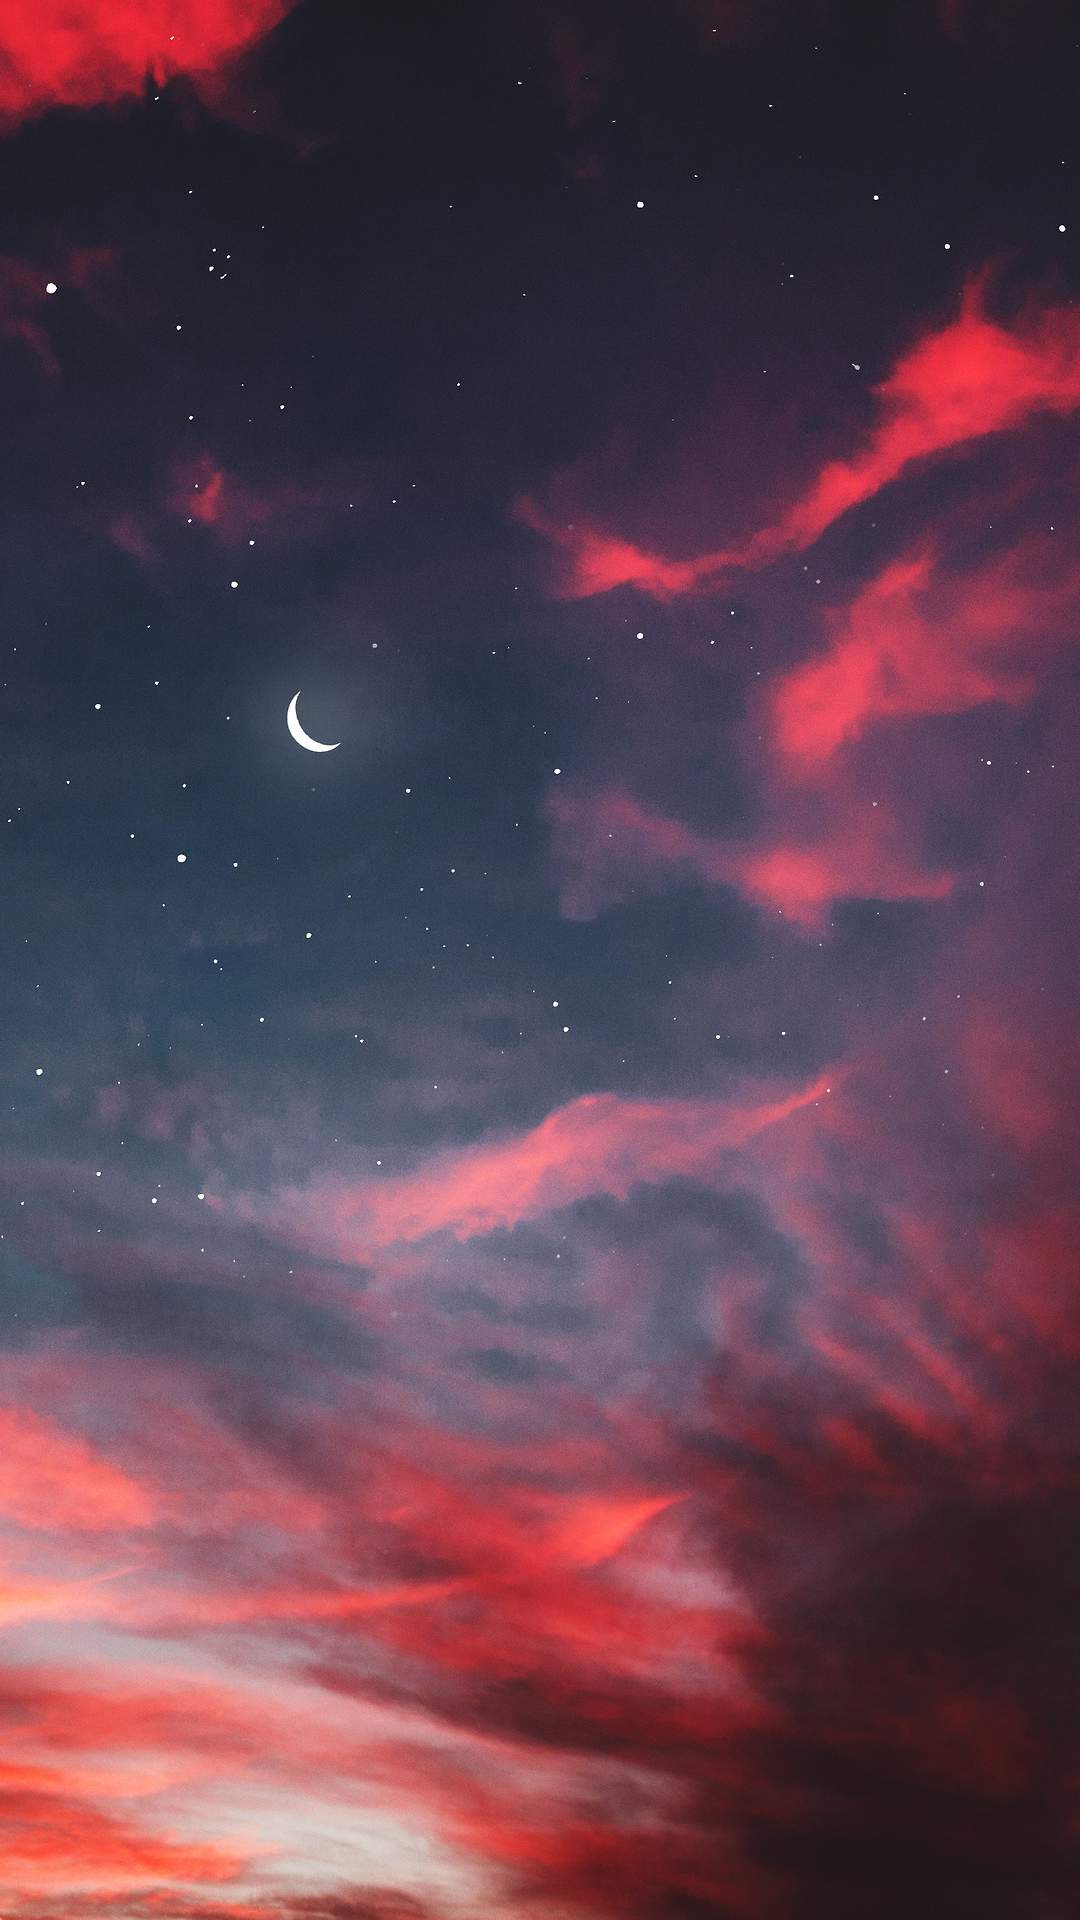 Twilight Moon Starry Sky Clouds iPhone Wallpaper